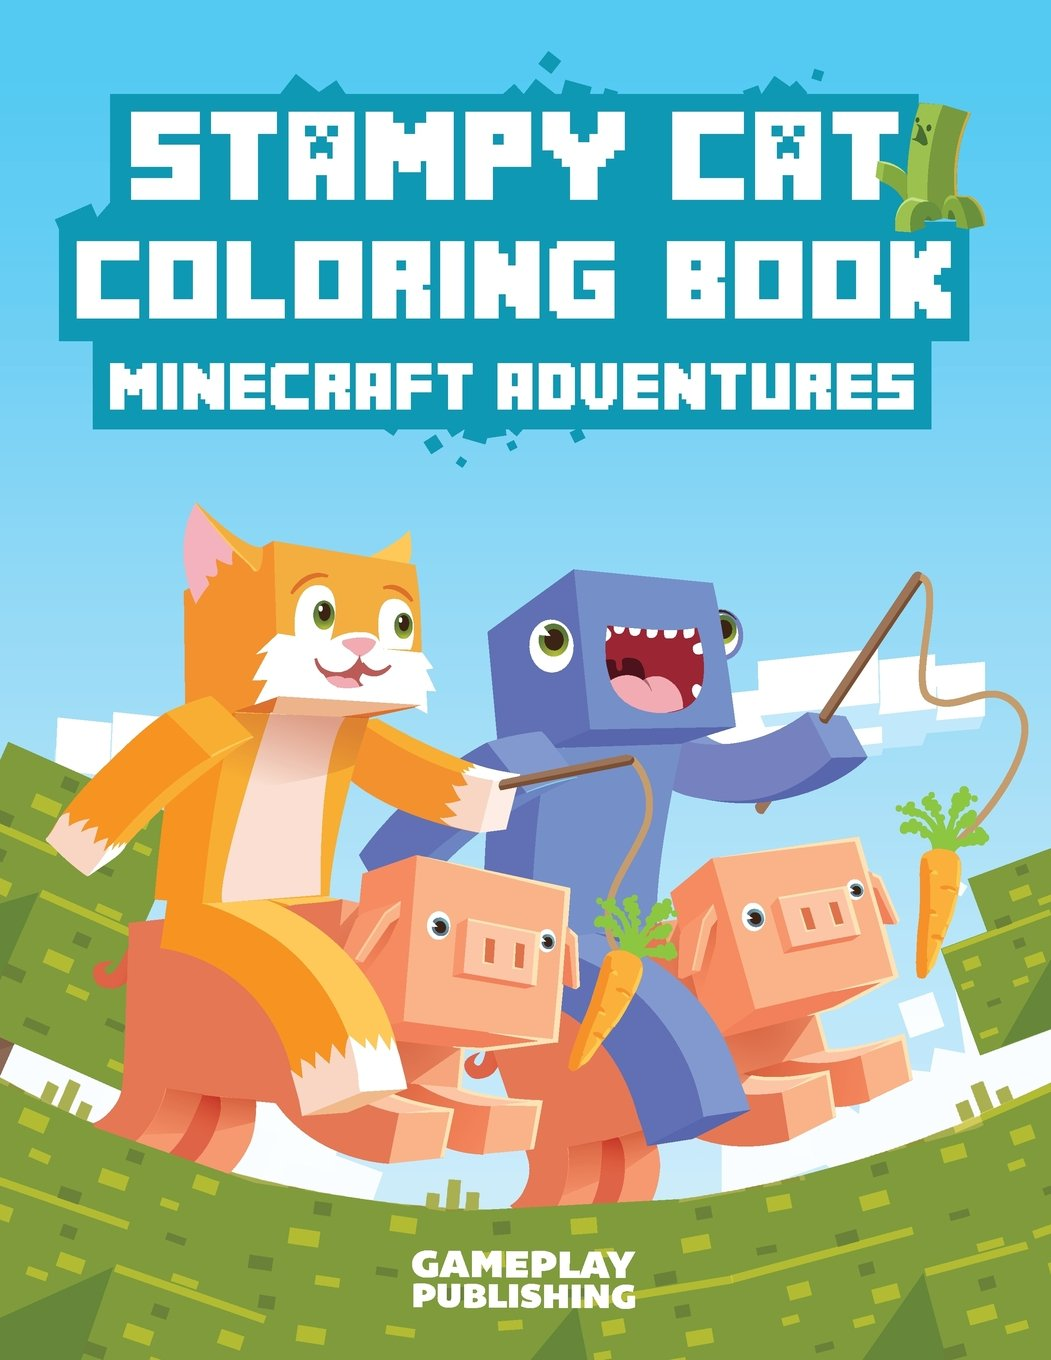 Stampy Cat Coloring Book Minecraft Adventures Gameplay